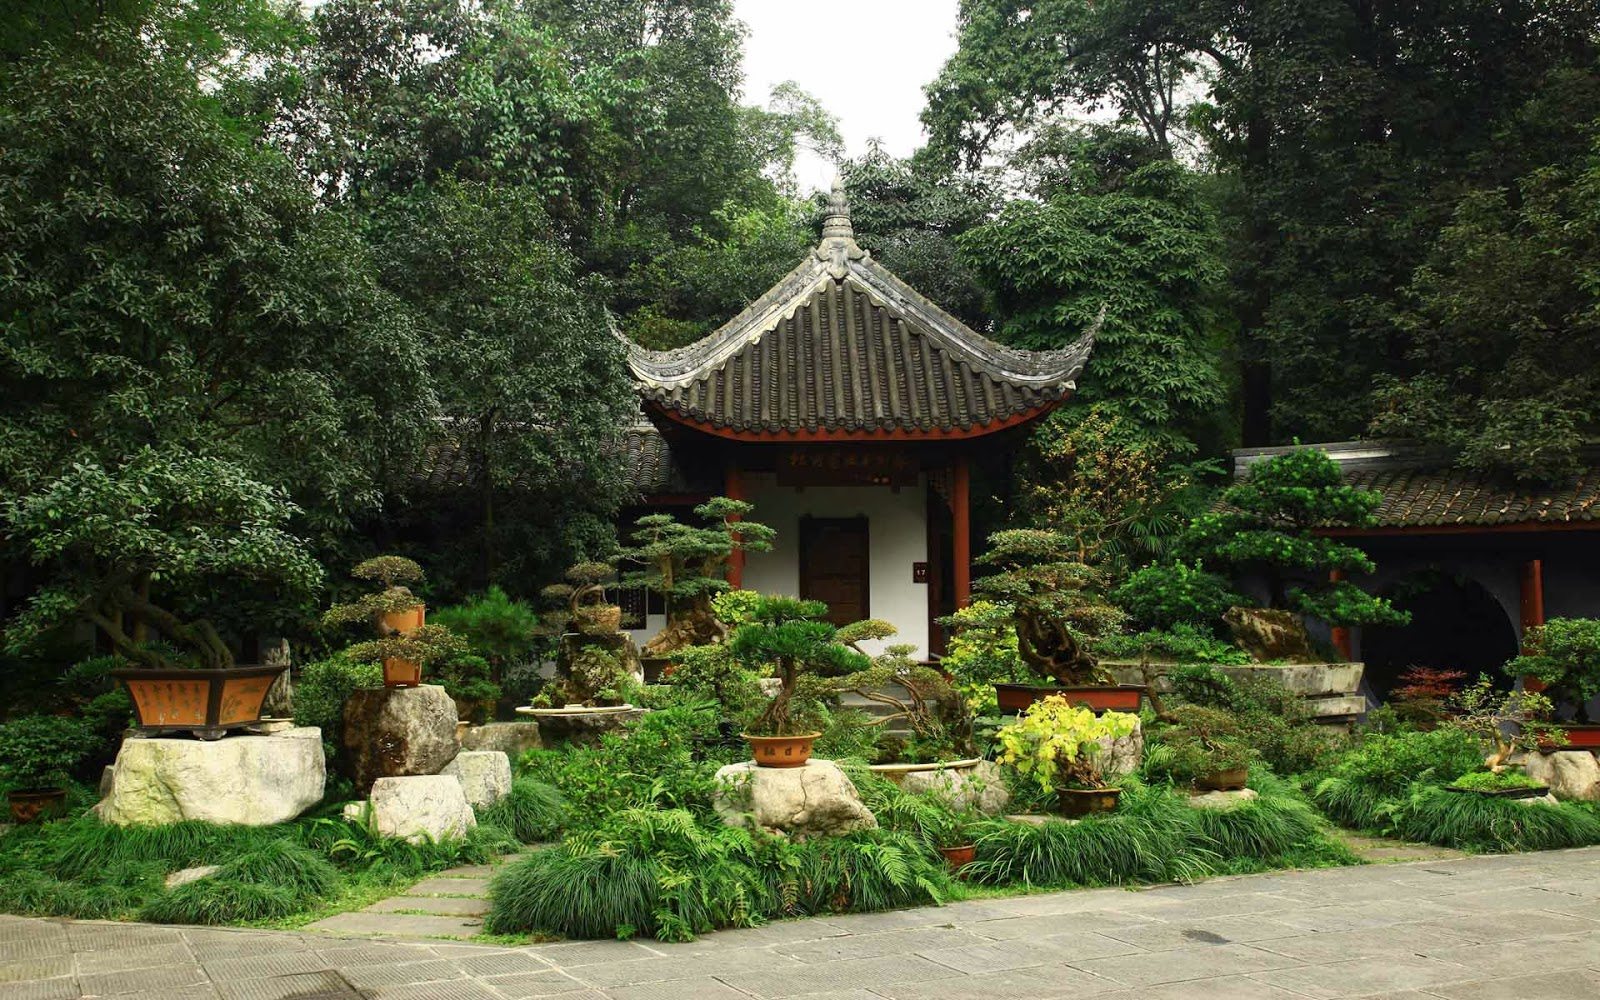 Hd wallpapers chinese garden wallpapers for Japanese house garden